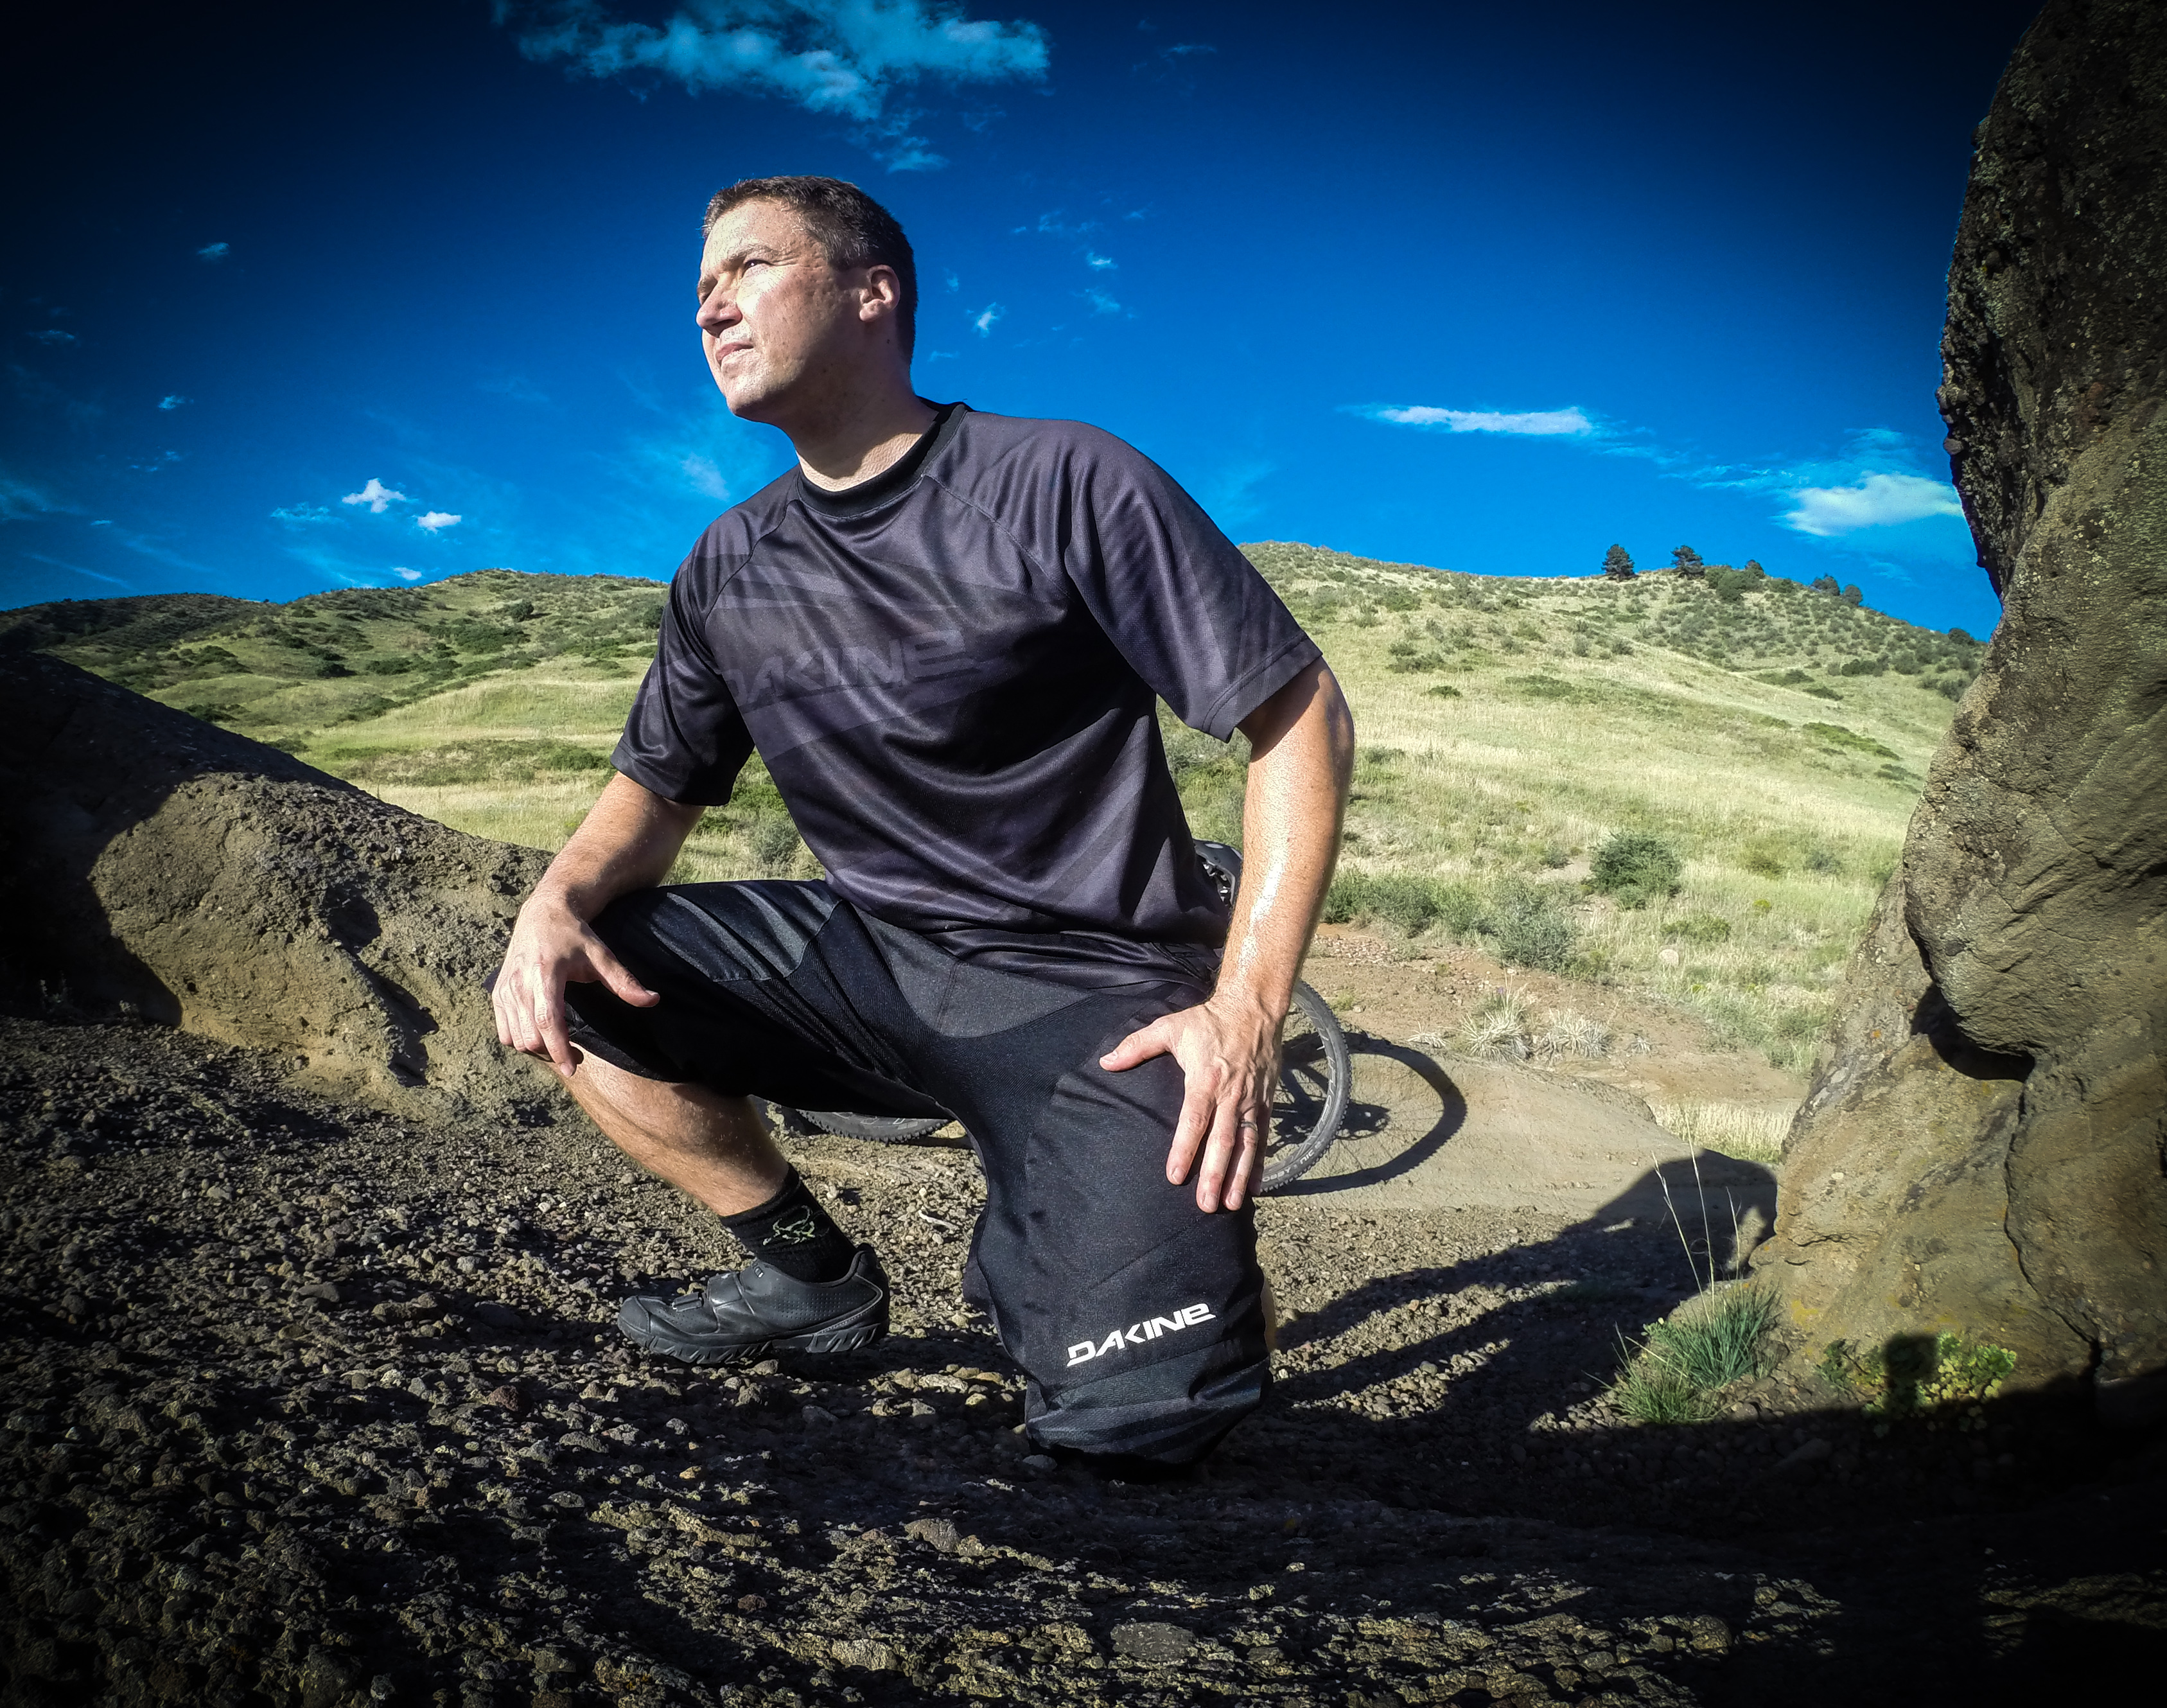 The Descent jersey and short pair well together and provide all day downhill comfort and protection